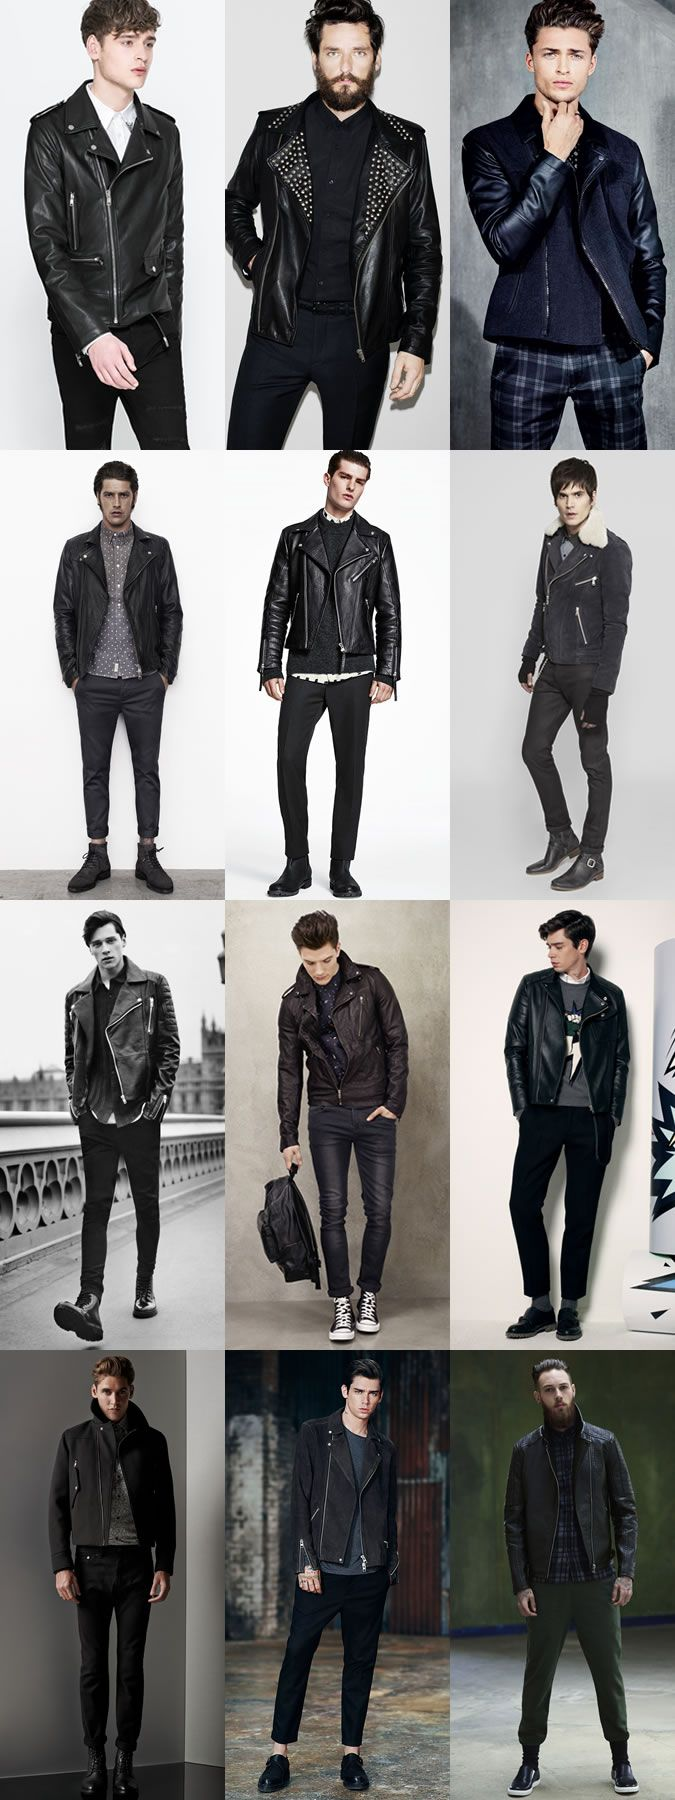 Men's 2014 Autumn/Winter Fashion Trend: Punk-Inspired The Biker Jacket Style Lookbook Inspiration